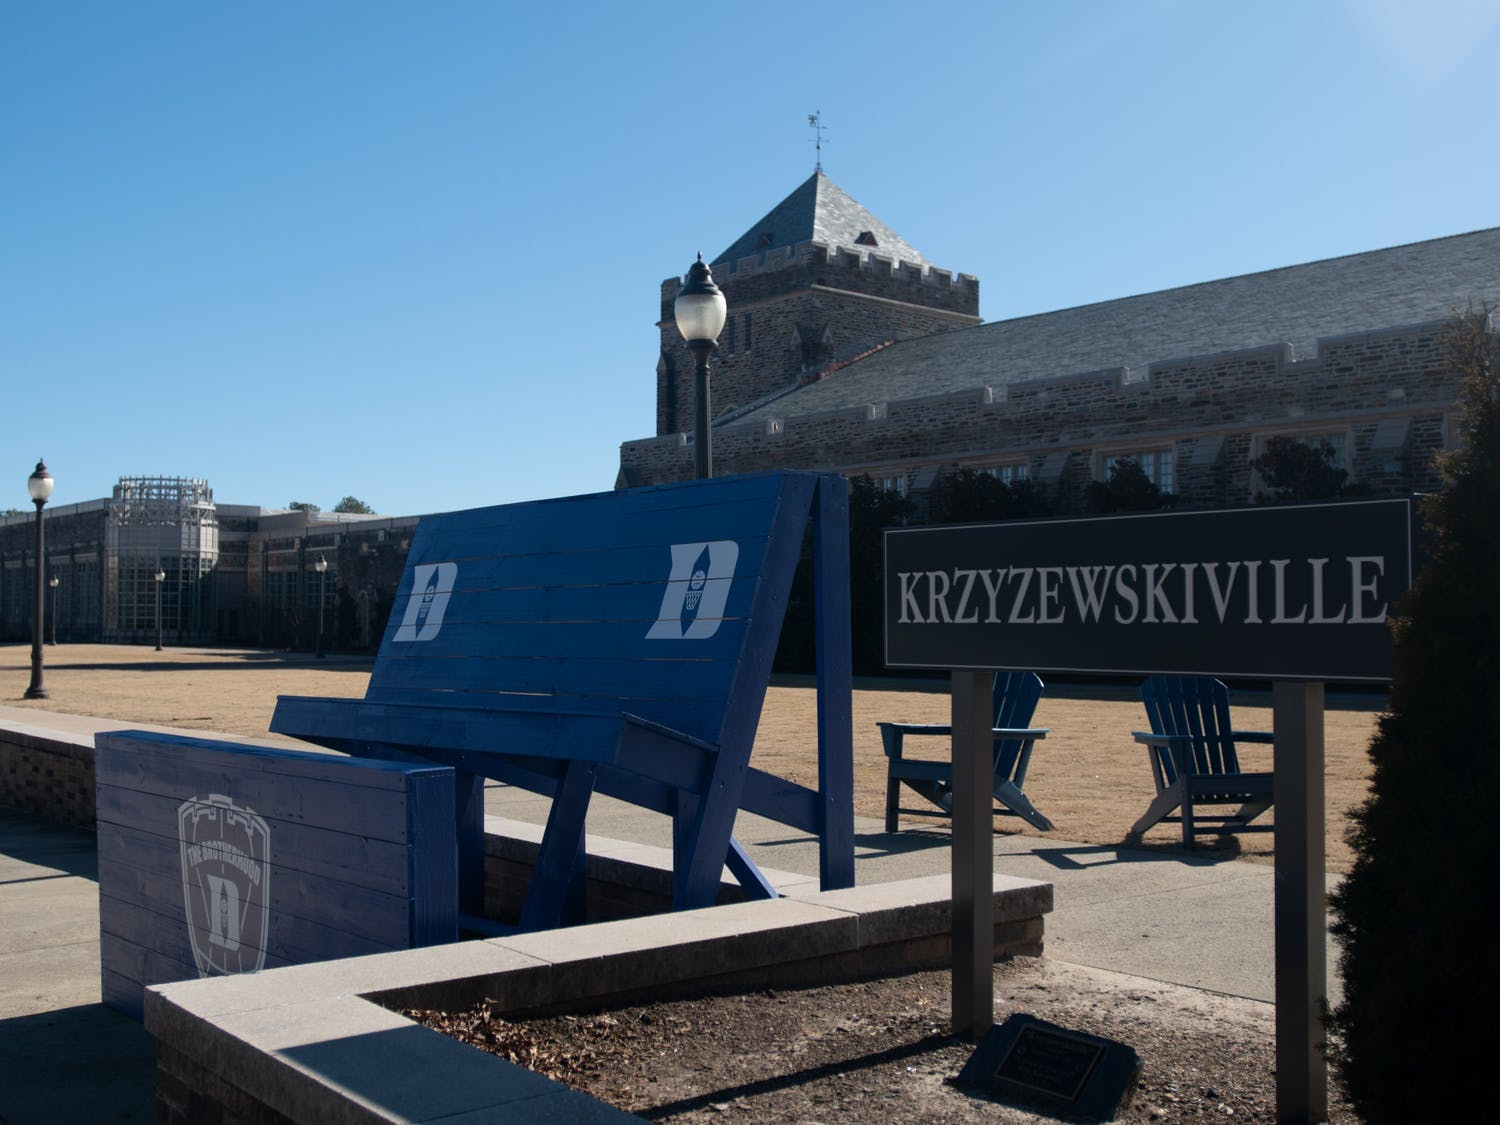 There are no tents in Krzyzewskiville this year.